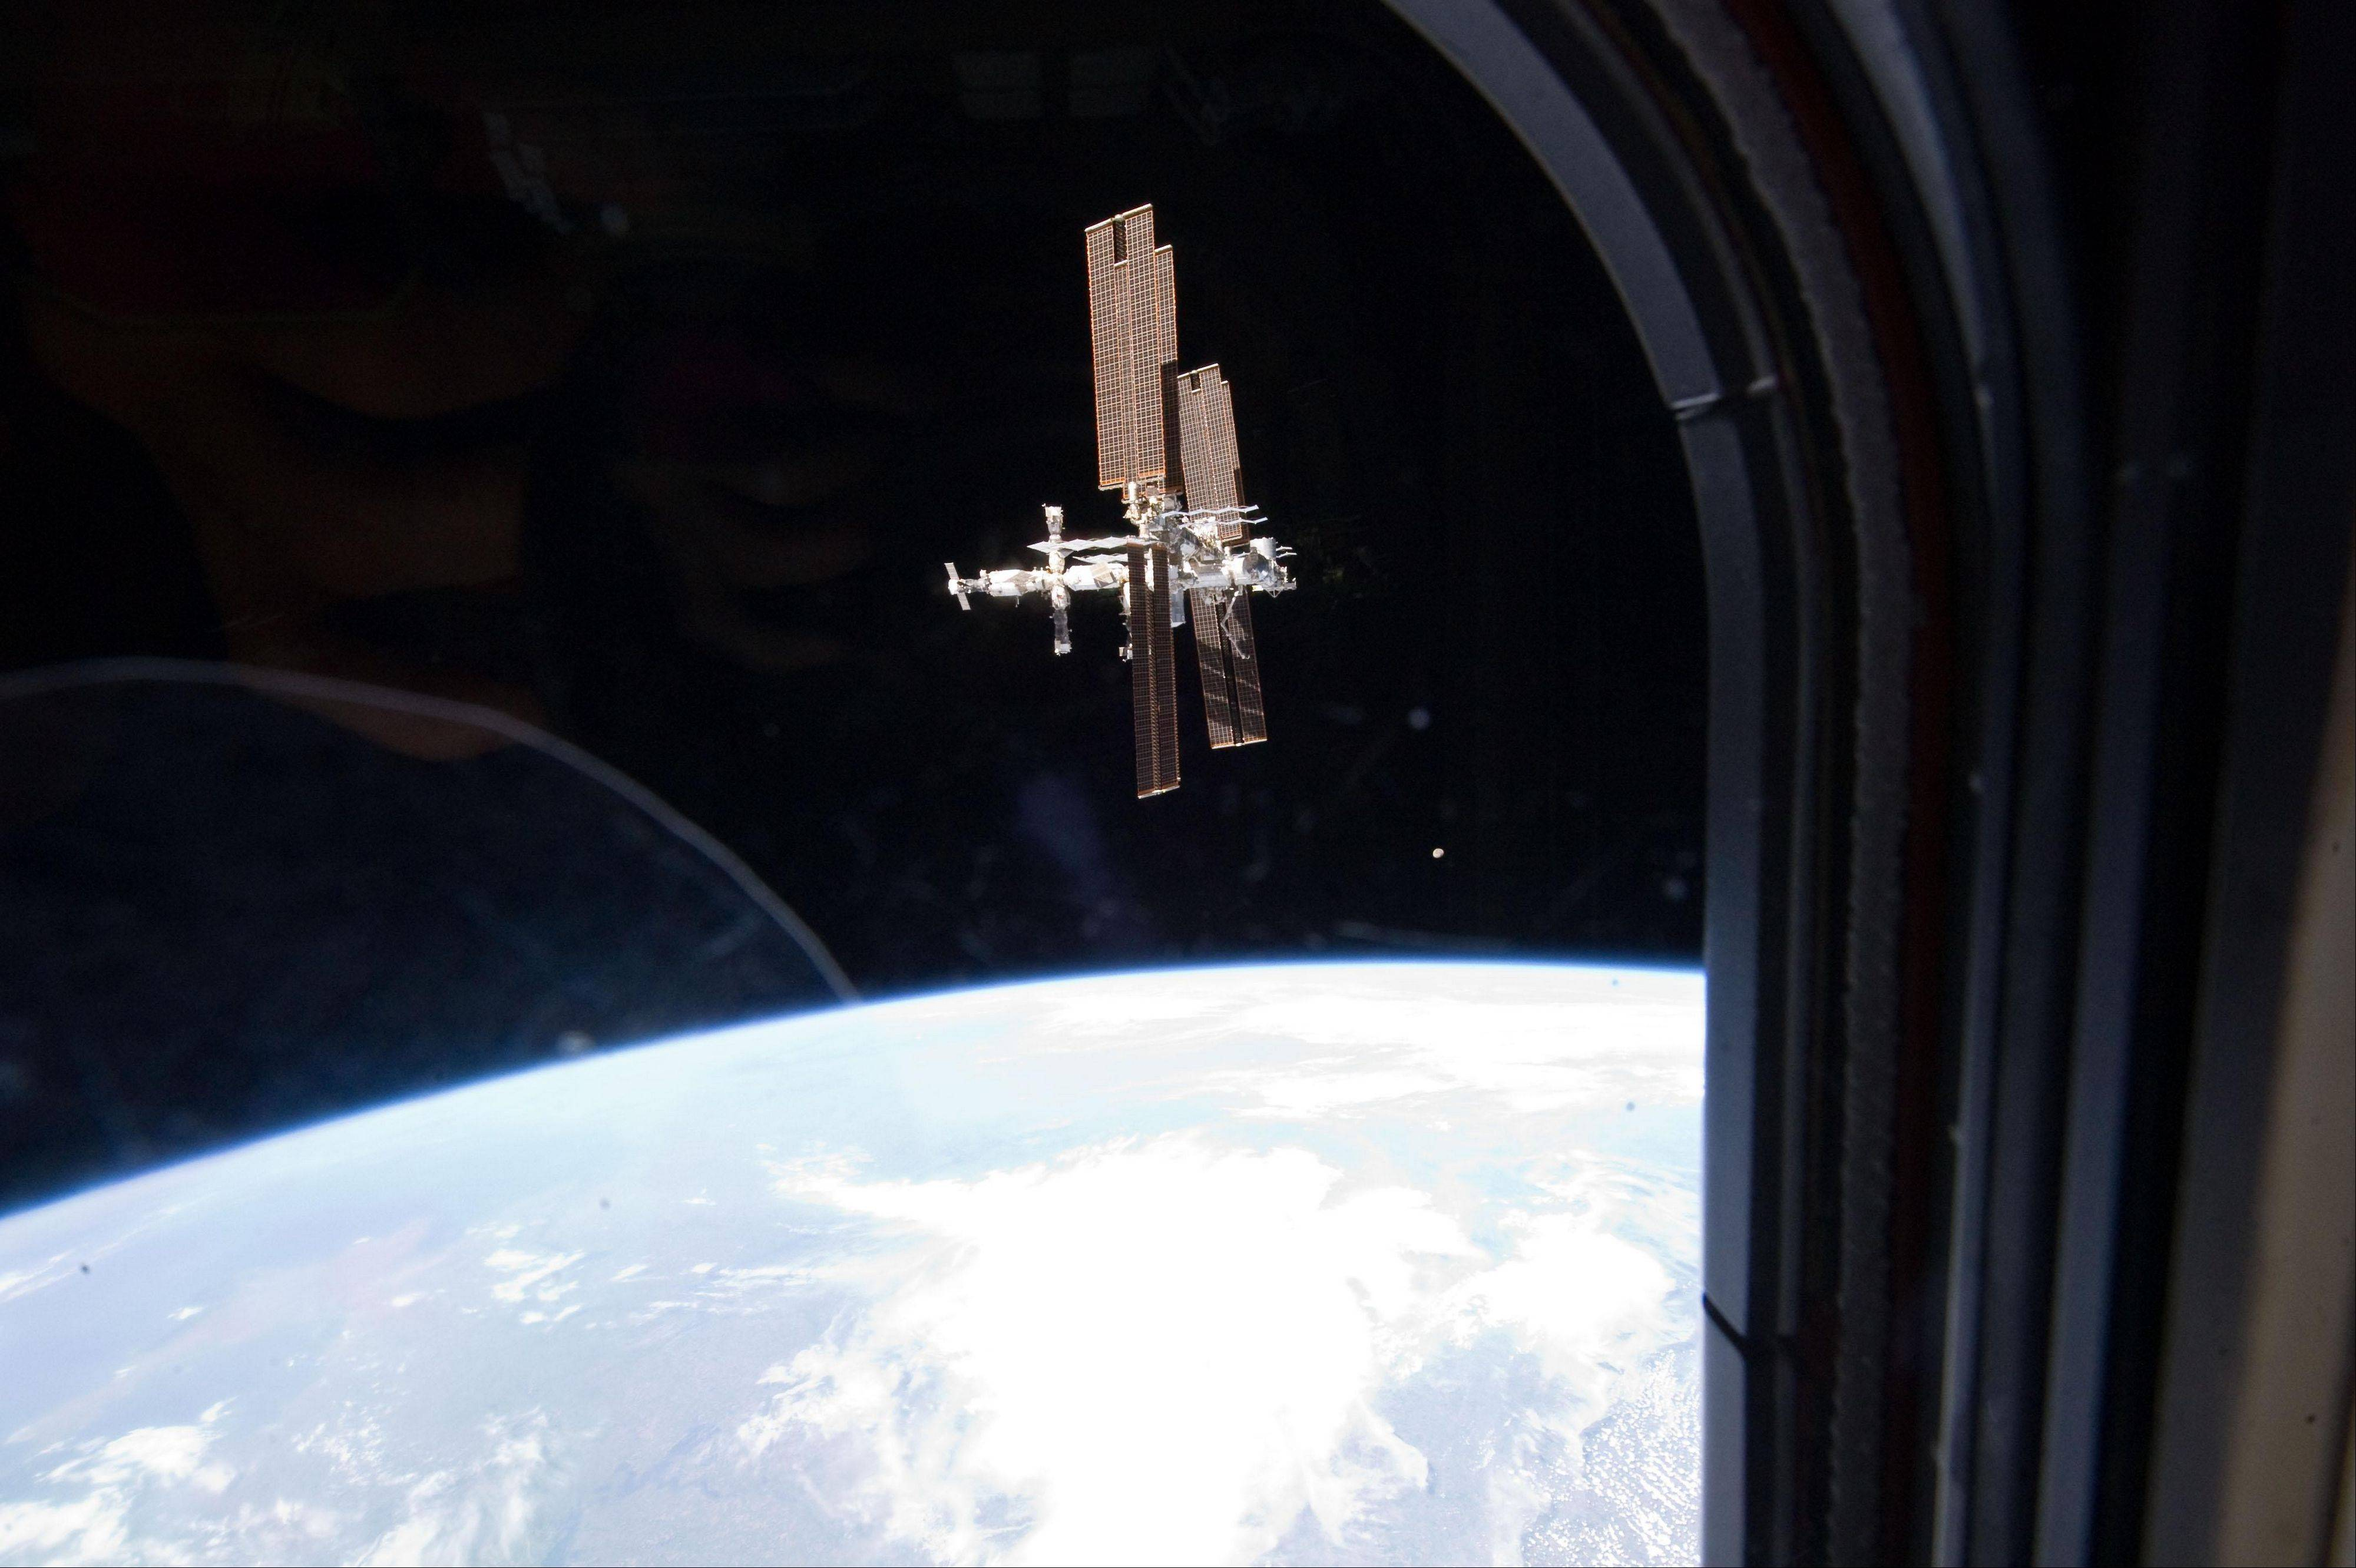 This July 19, 2011, image shows the International Space Station photographed by a member of Atlantis' STS-135 crew during a fly around as the shuttle departed the station on the last space shuttle mission.